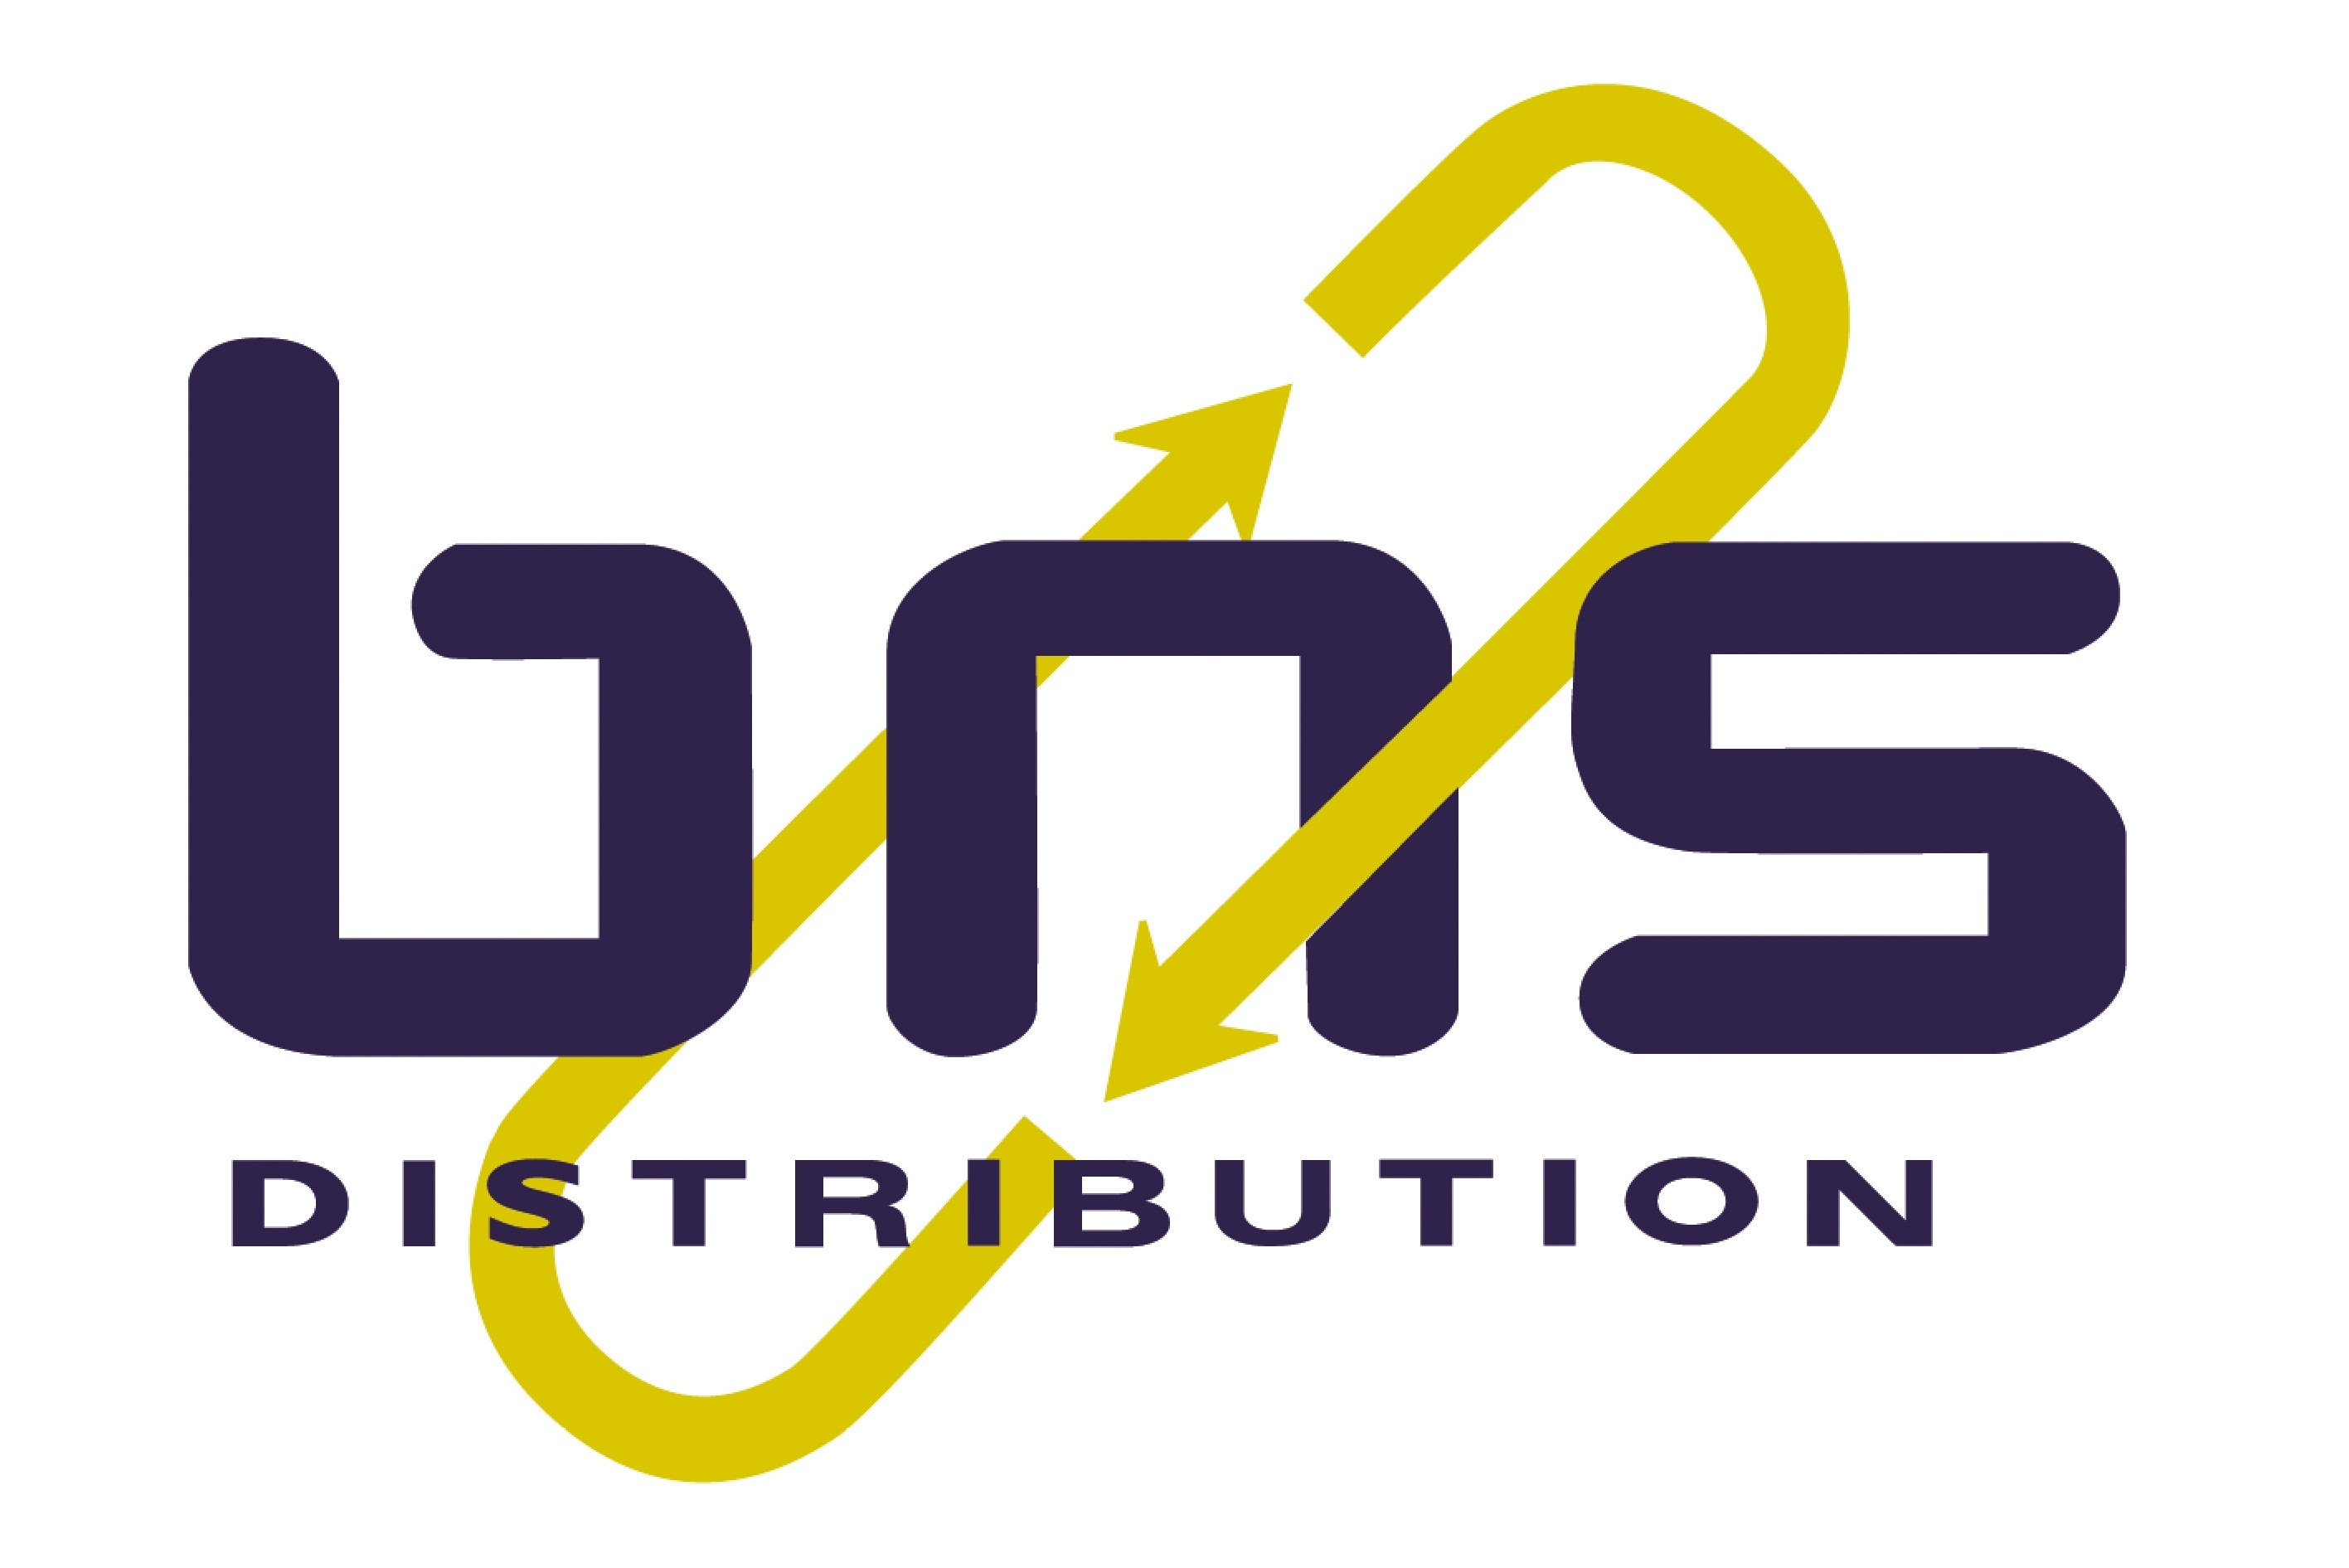 Bns distribution logo highres.pdf